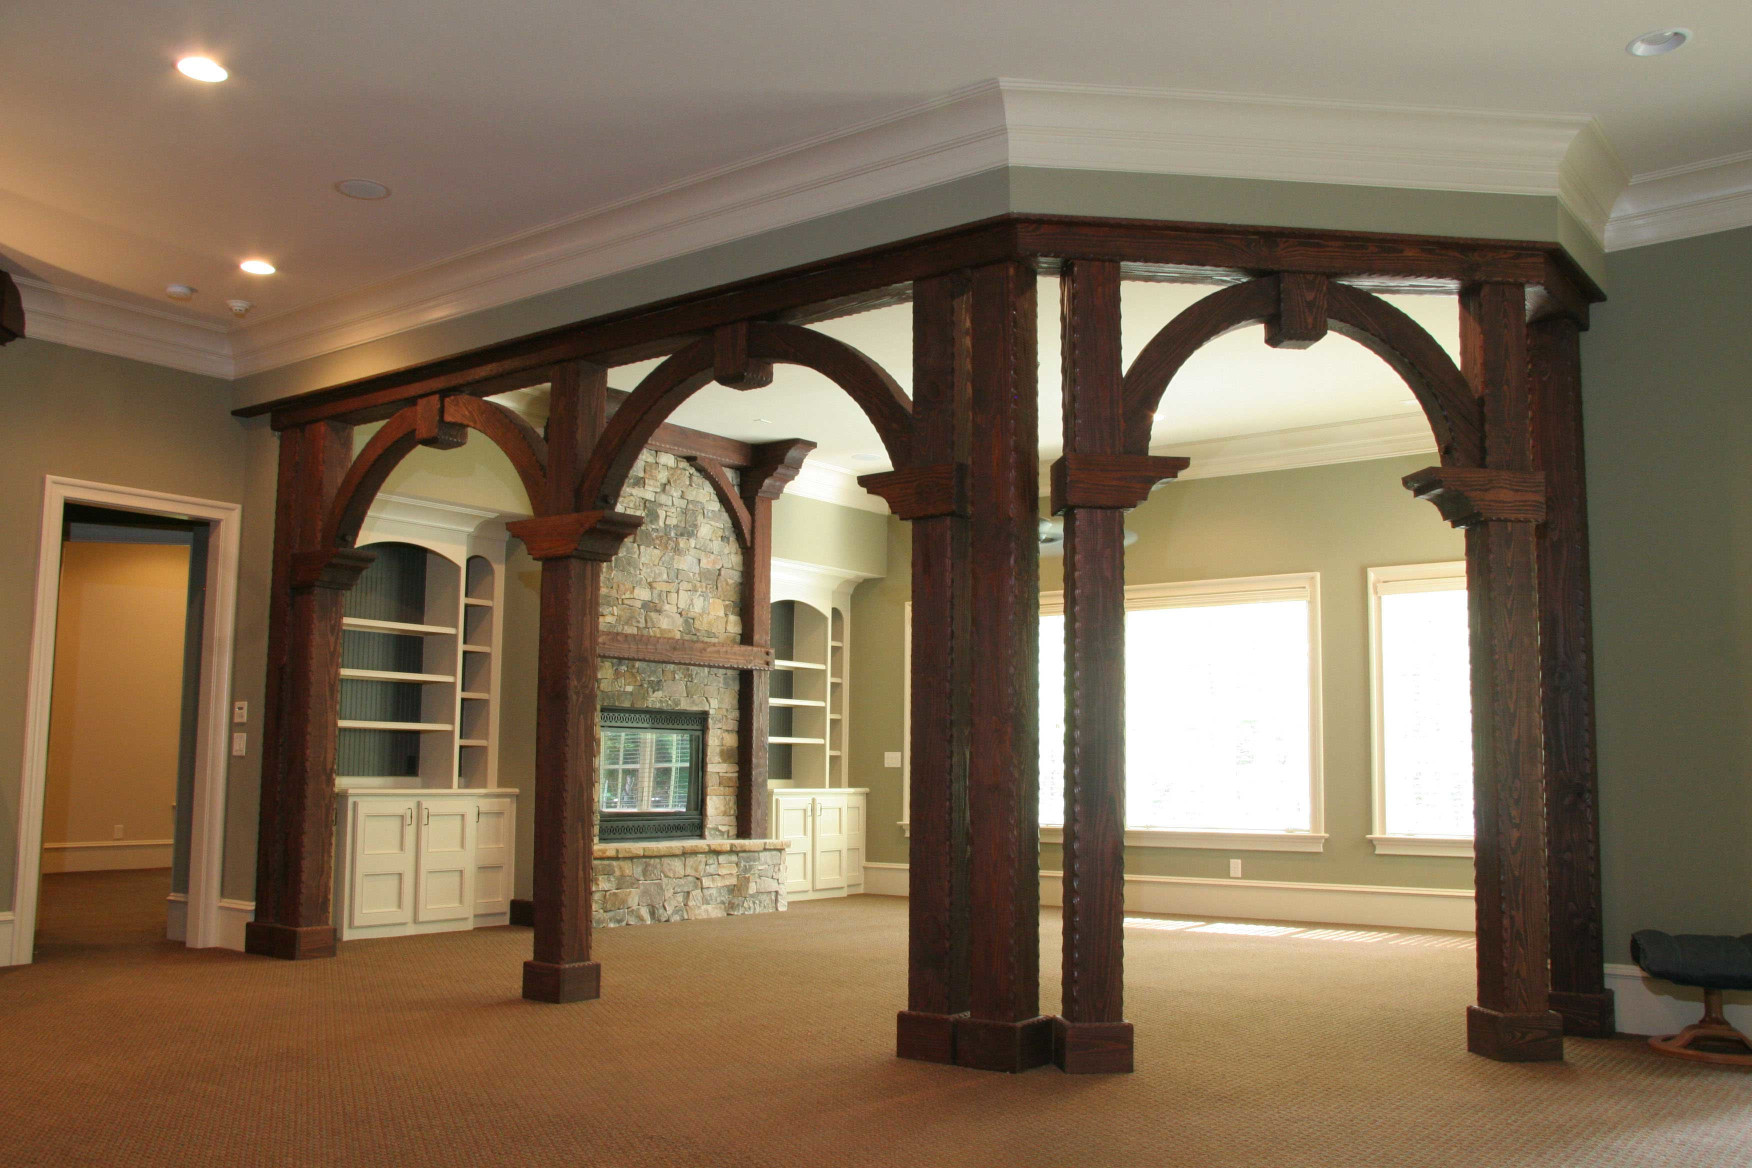 This custom designed interior entry includes wood posts, wood beams, wood beam ends, wood braces, and a wood mantel with legs.